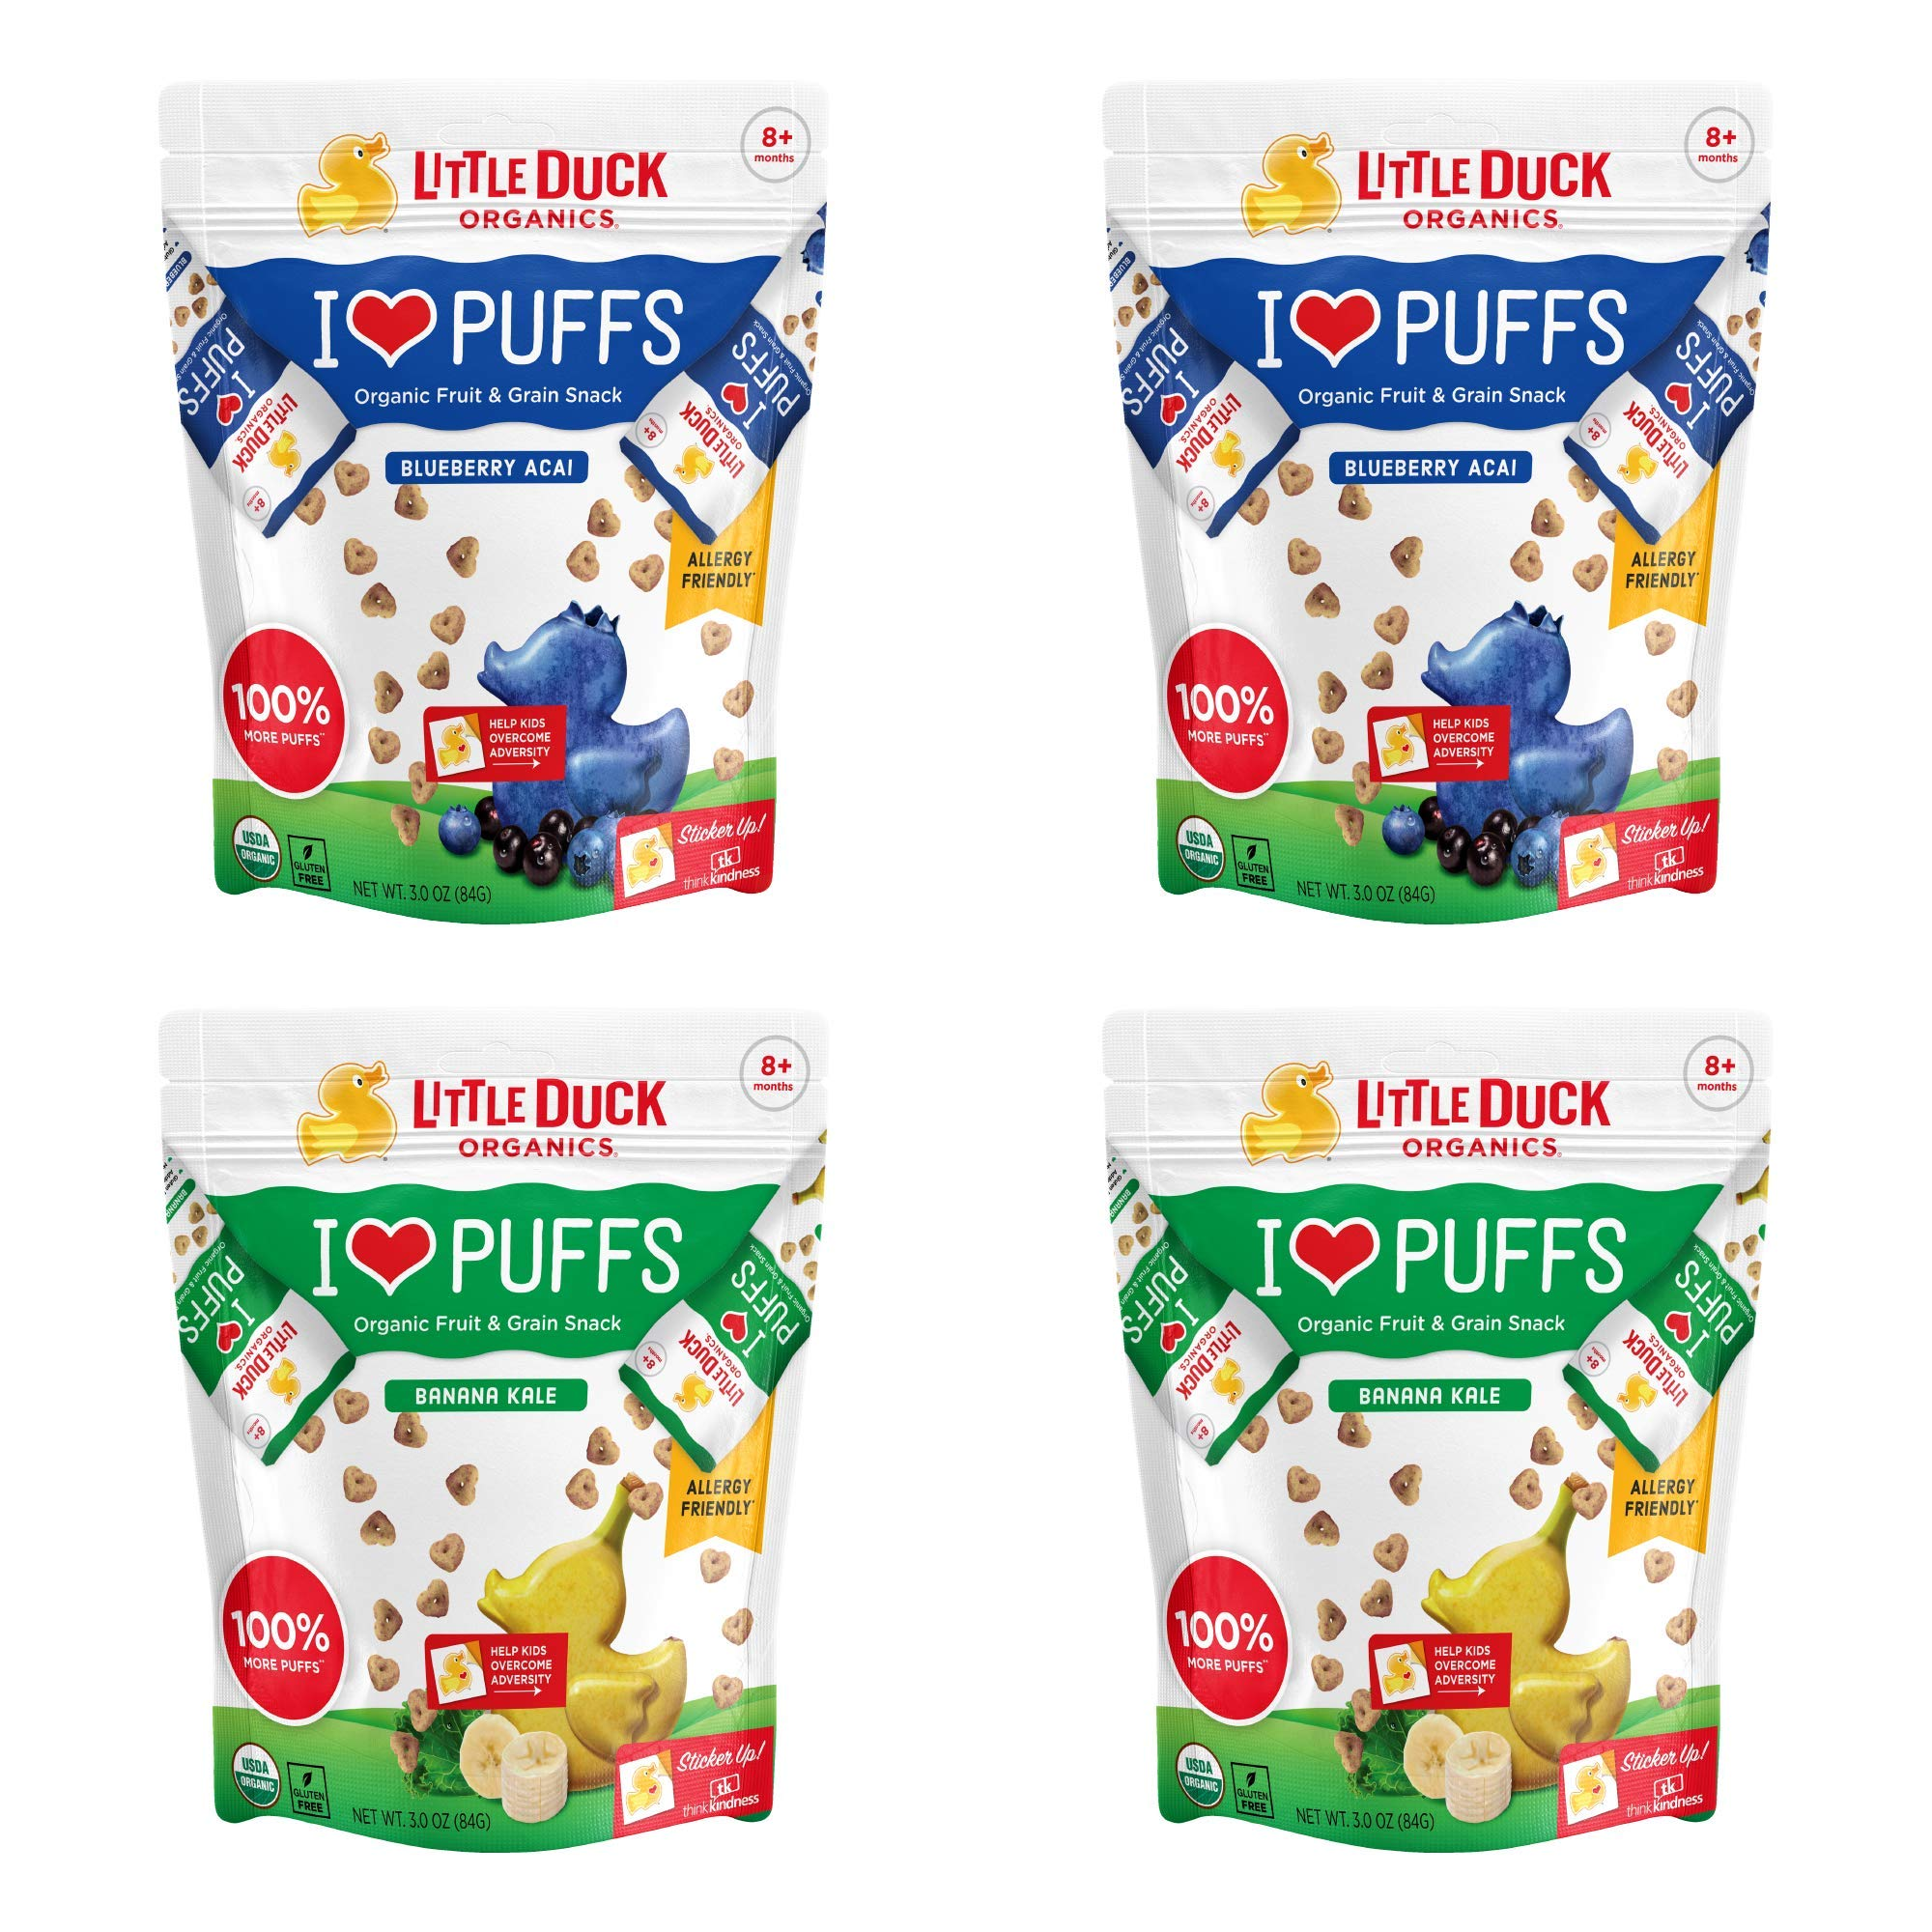 Little Duck Organics I Love Puffs, Fruit & Grain Snack, Variety Pack, 3 Ounce Pouch (Pack of 4) 2 Each: Blueberry/Acai, Banana/Kale by Little Duck Organics